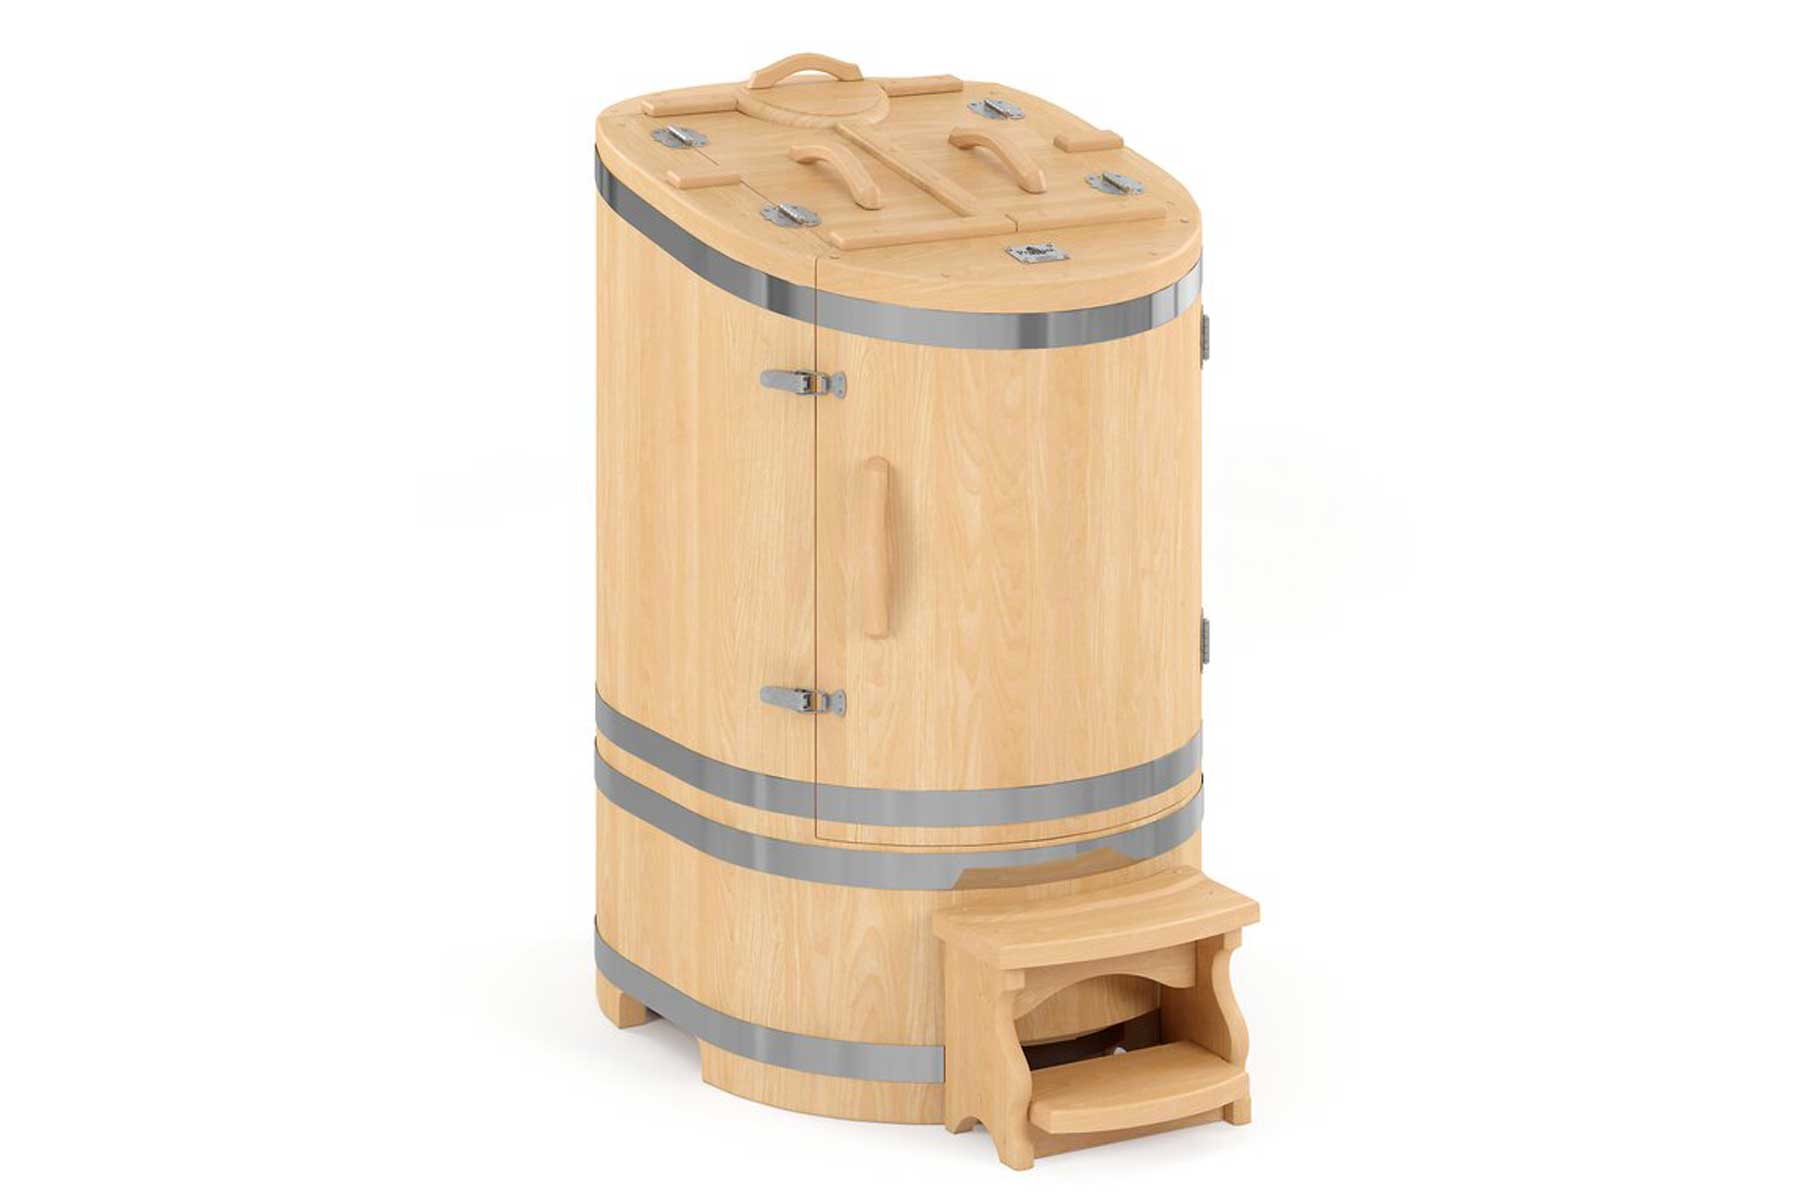 RebirthPRO Luxury Cedar Barrel 1 Person Traditional Steam Sauna